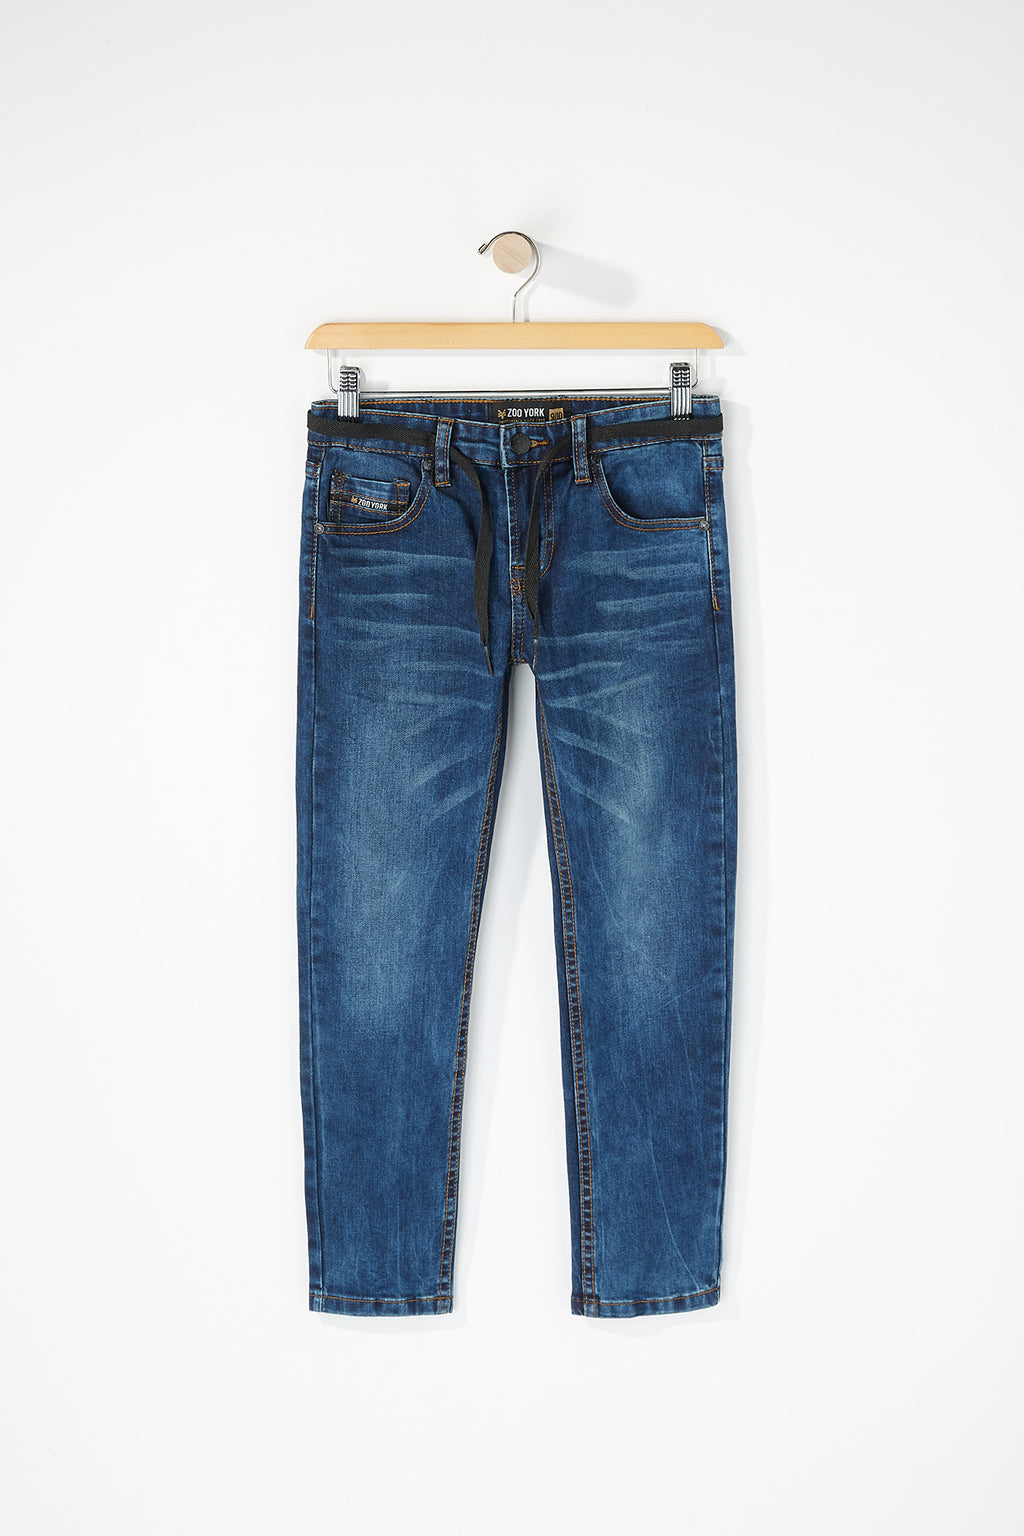 Zoo York Boys Skinny Dark Blue Jeans